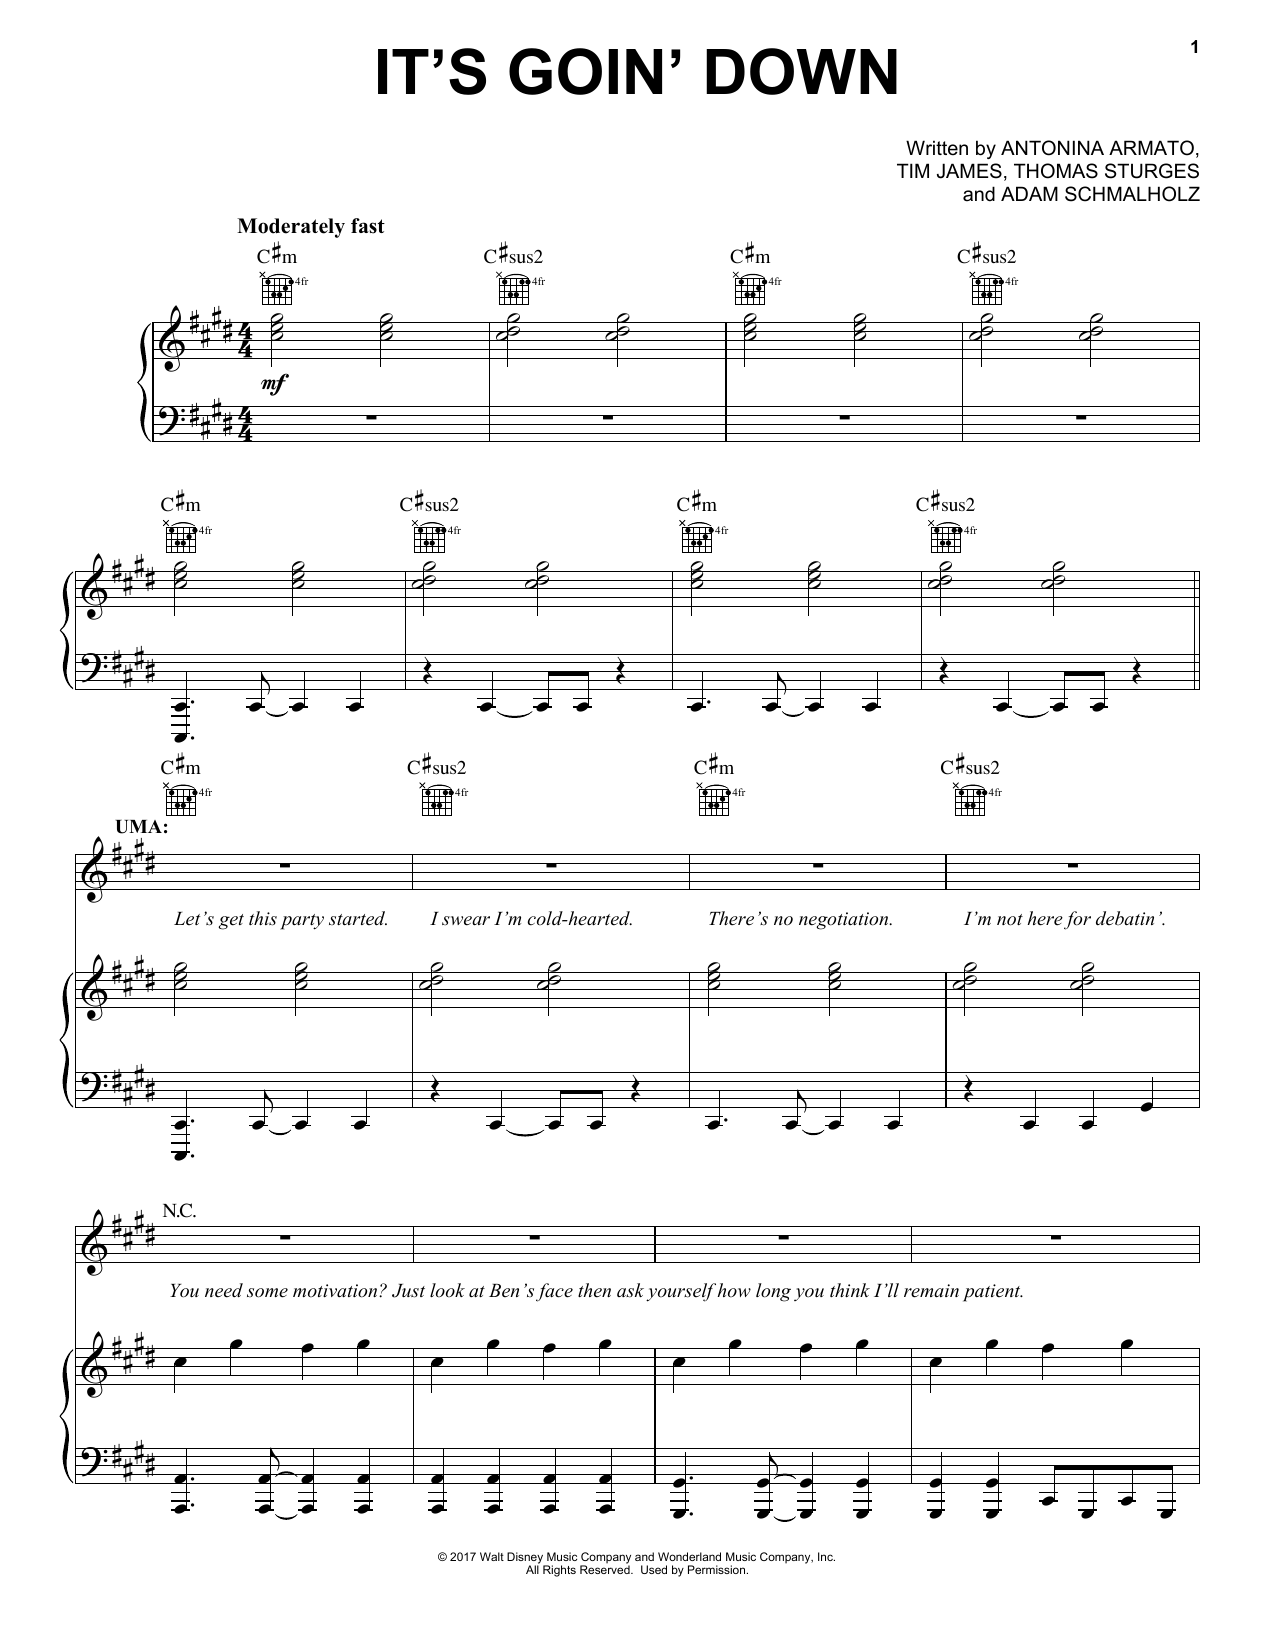 Tim James It's Goin' Down (from Disney's Descendants 2) sheet music notes and chords. Download Printable PDF.